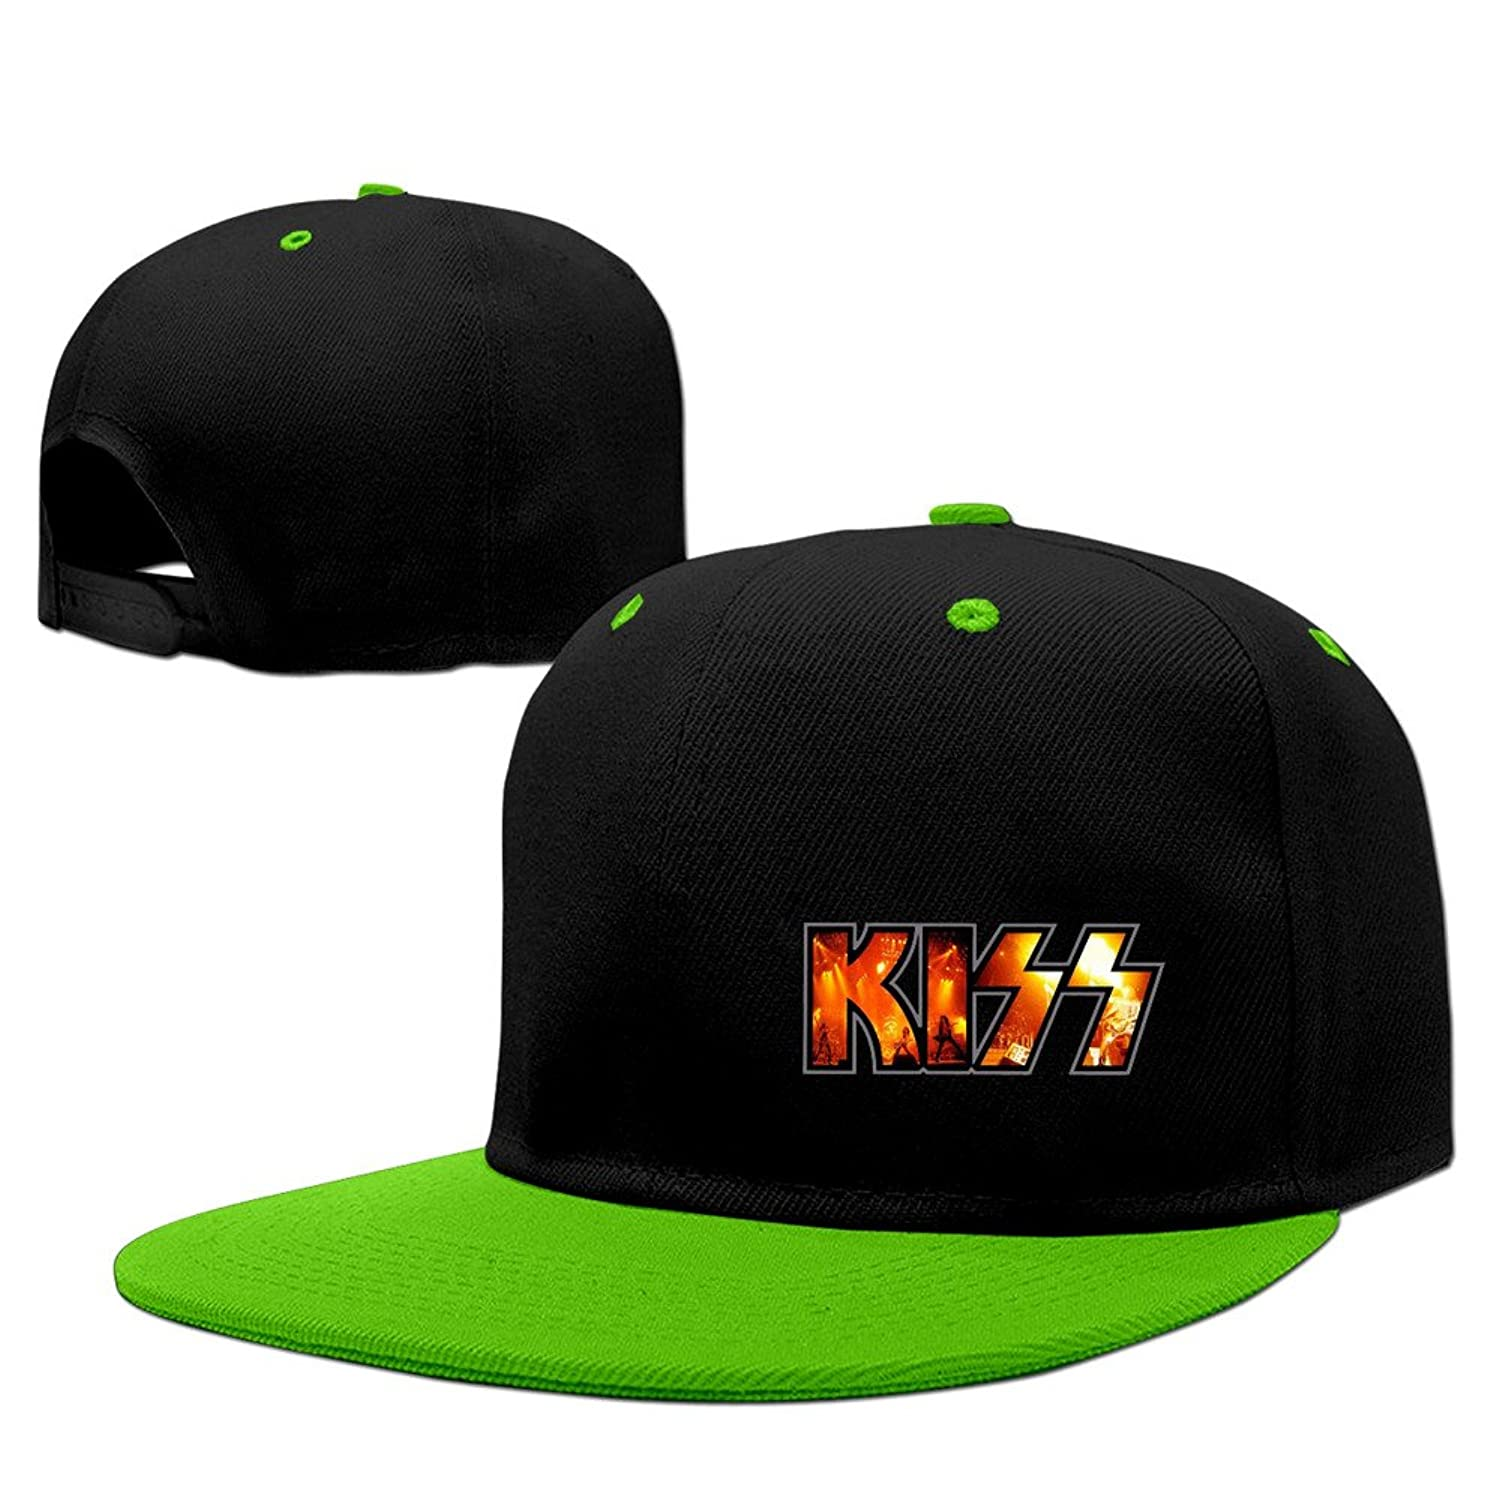 Custom Your Own Kiss Band Logo Hip Hip Cap Baseball Hat For Unisex Adjustable 100% Cotton